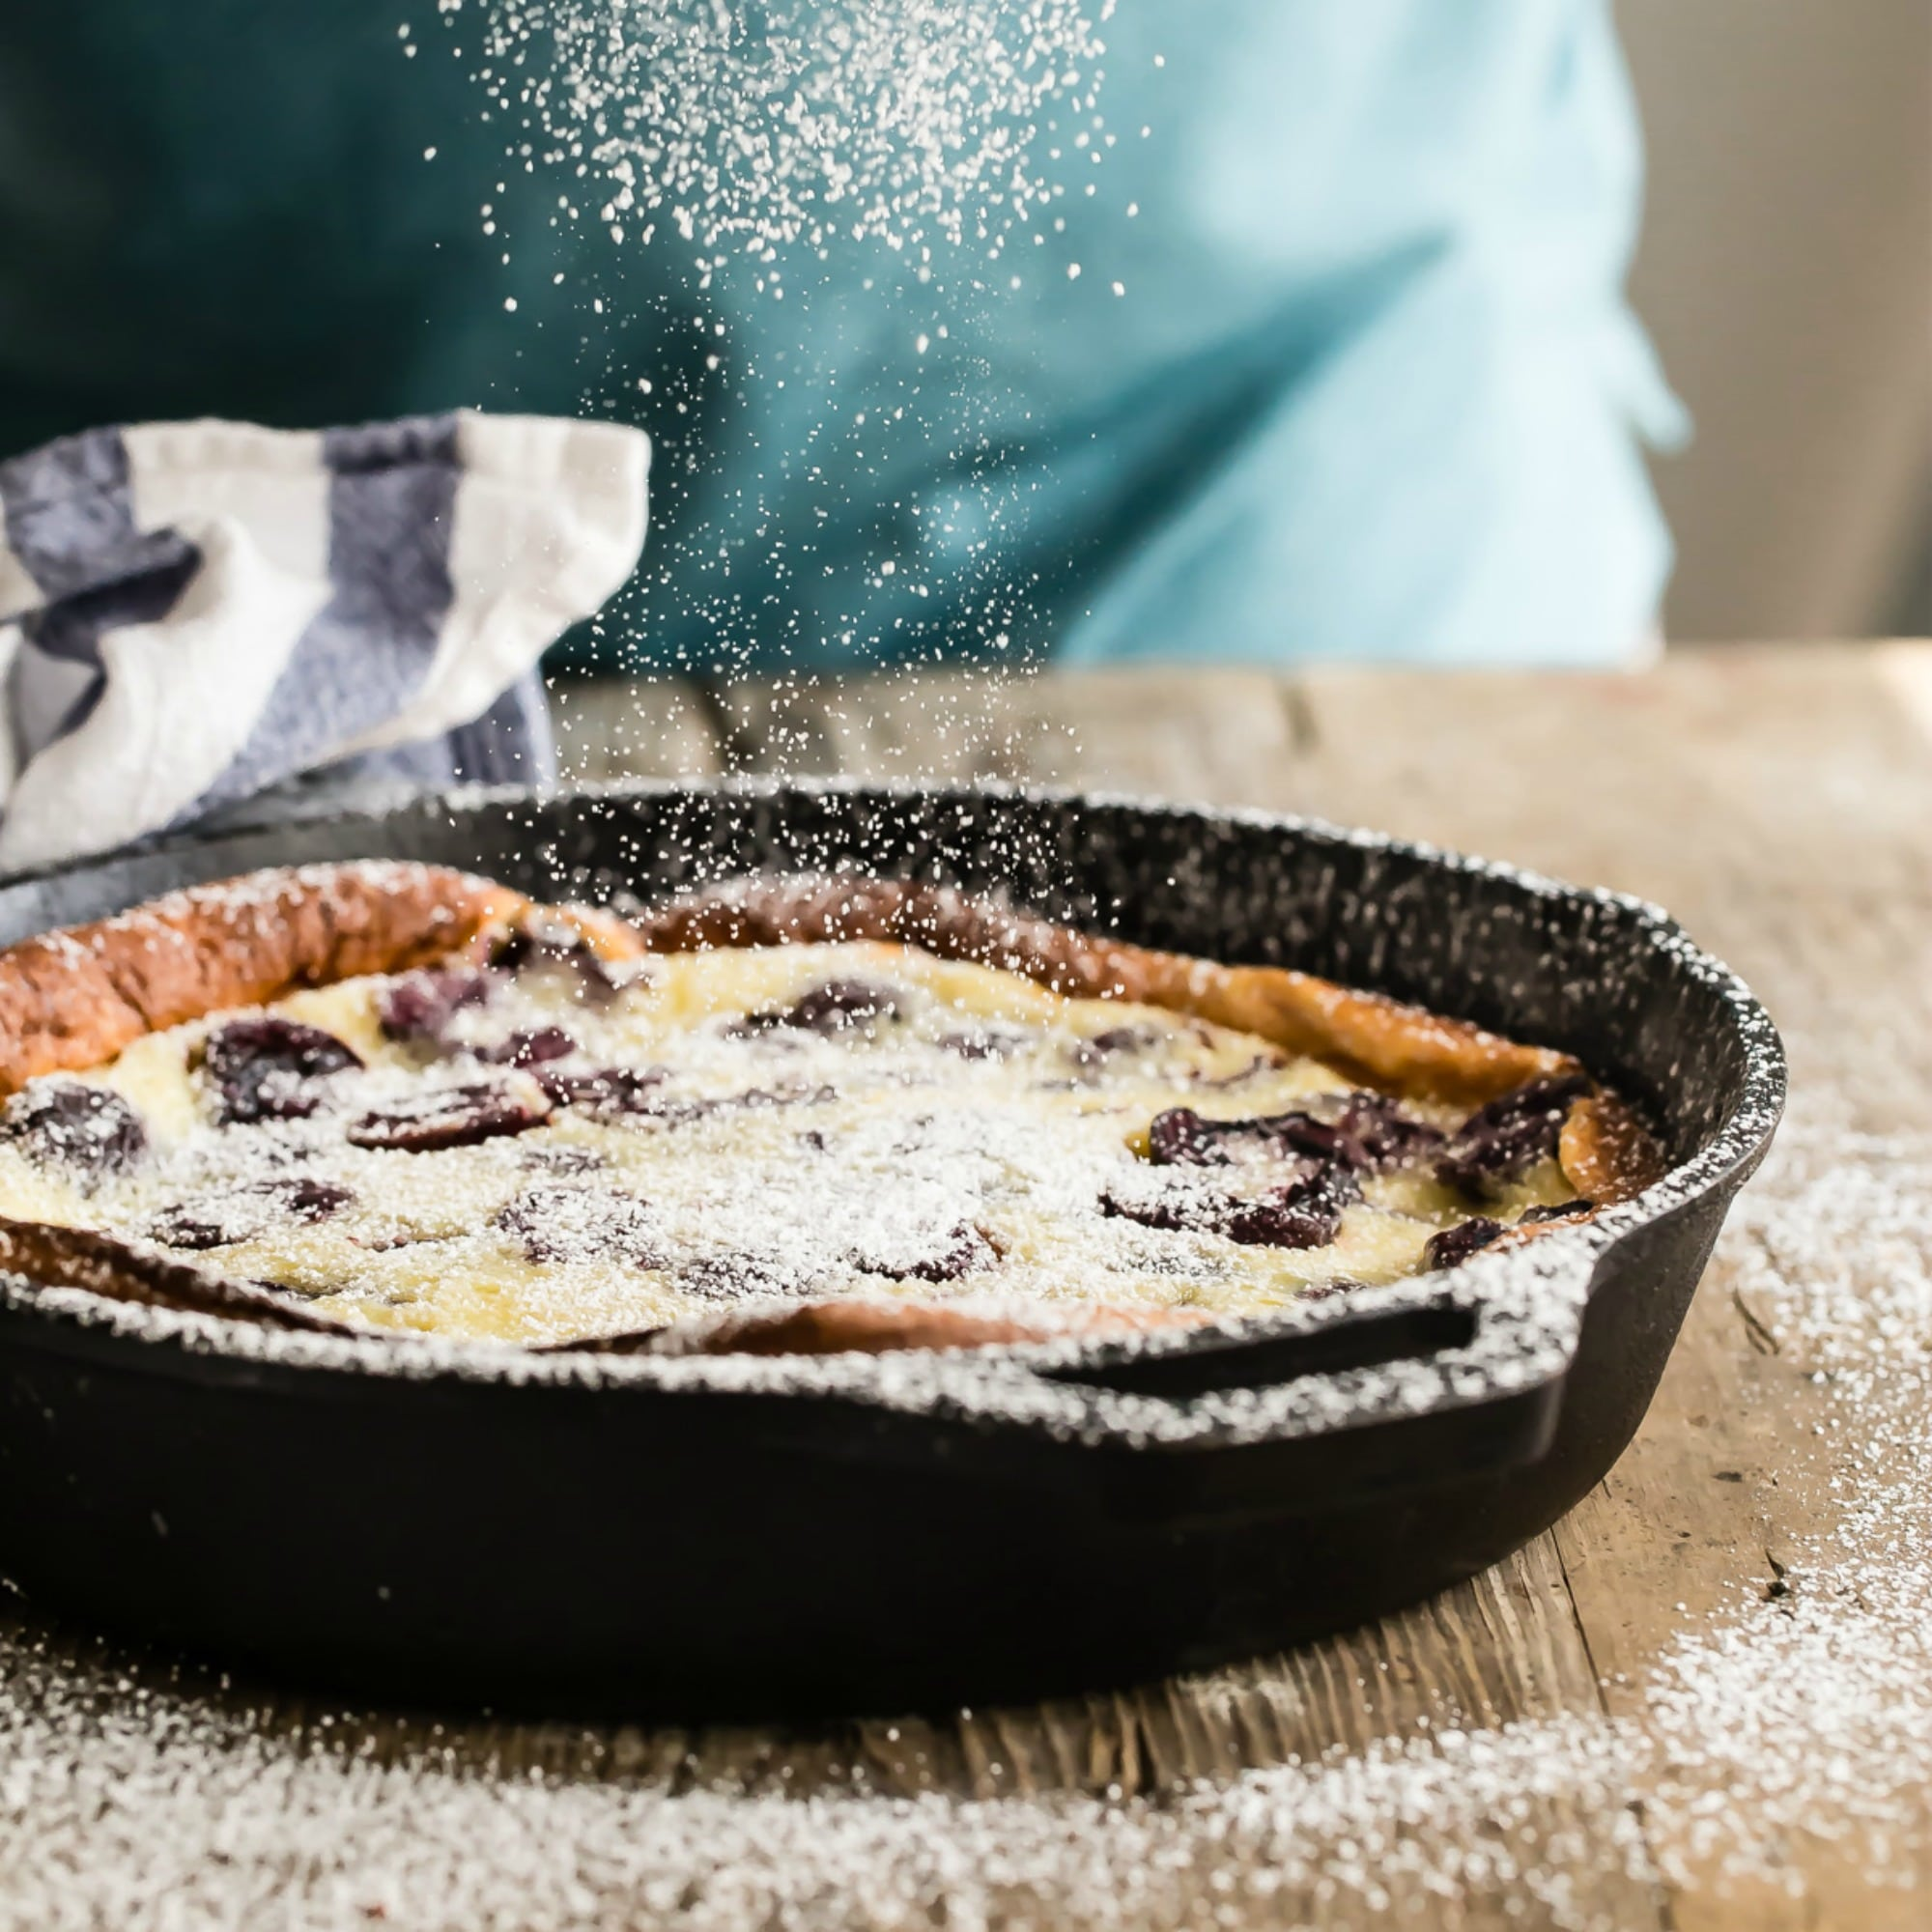 You can thank the French for coming up with cherry clafoutis: the easiest, most delicious dessert you'll ever make. Even if you've never been a great baker, this foolproof recipe is so forgiving and simple to whip up that you just may surprise yourself.